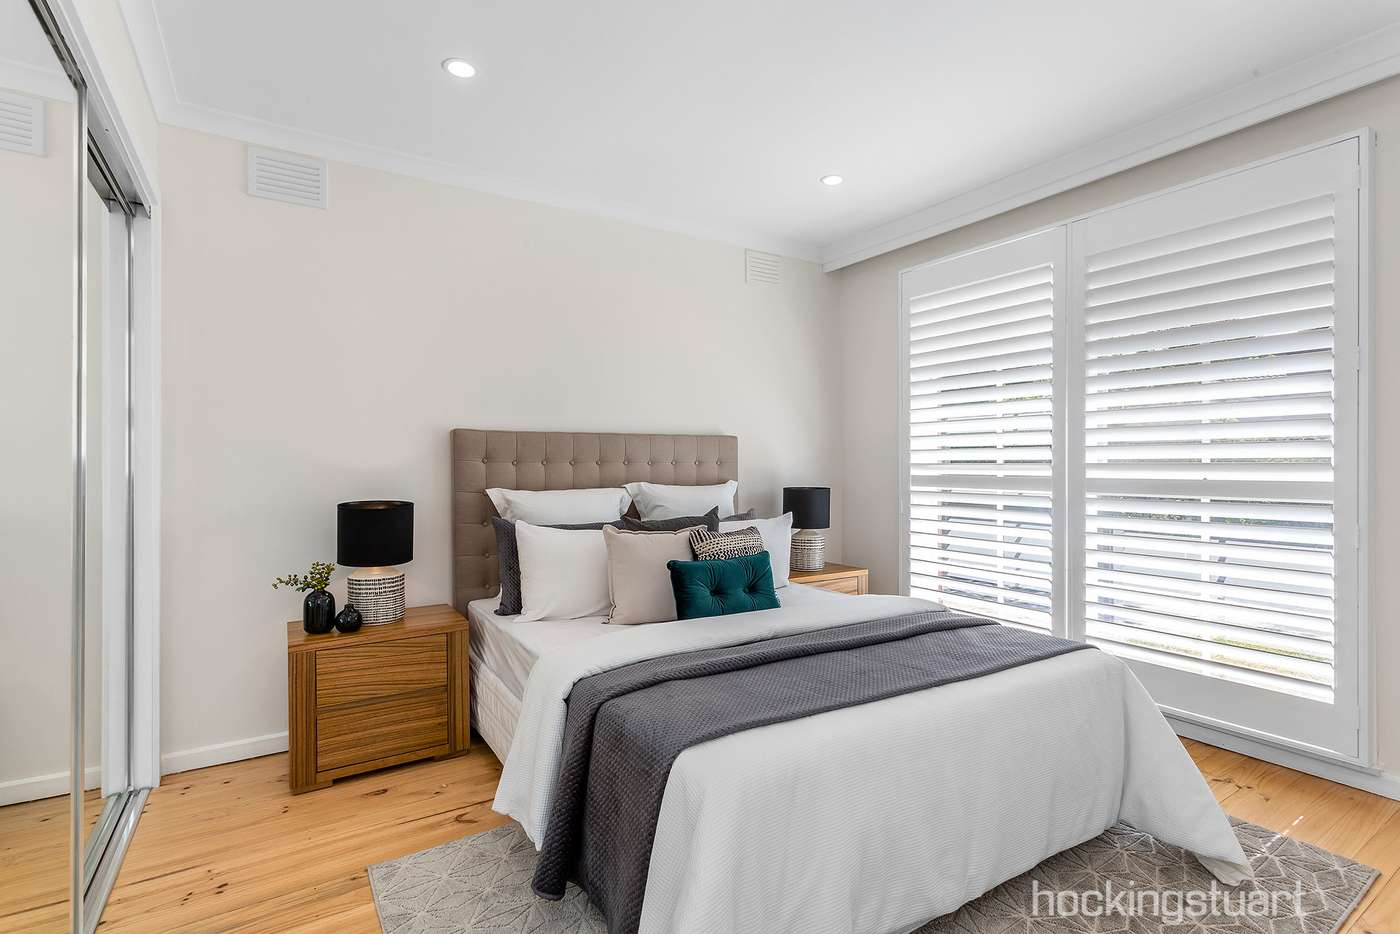 Sixth view of Homely house listing, 2/1 Howard Street, Glen Iris VIC 3146